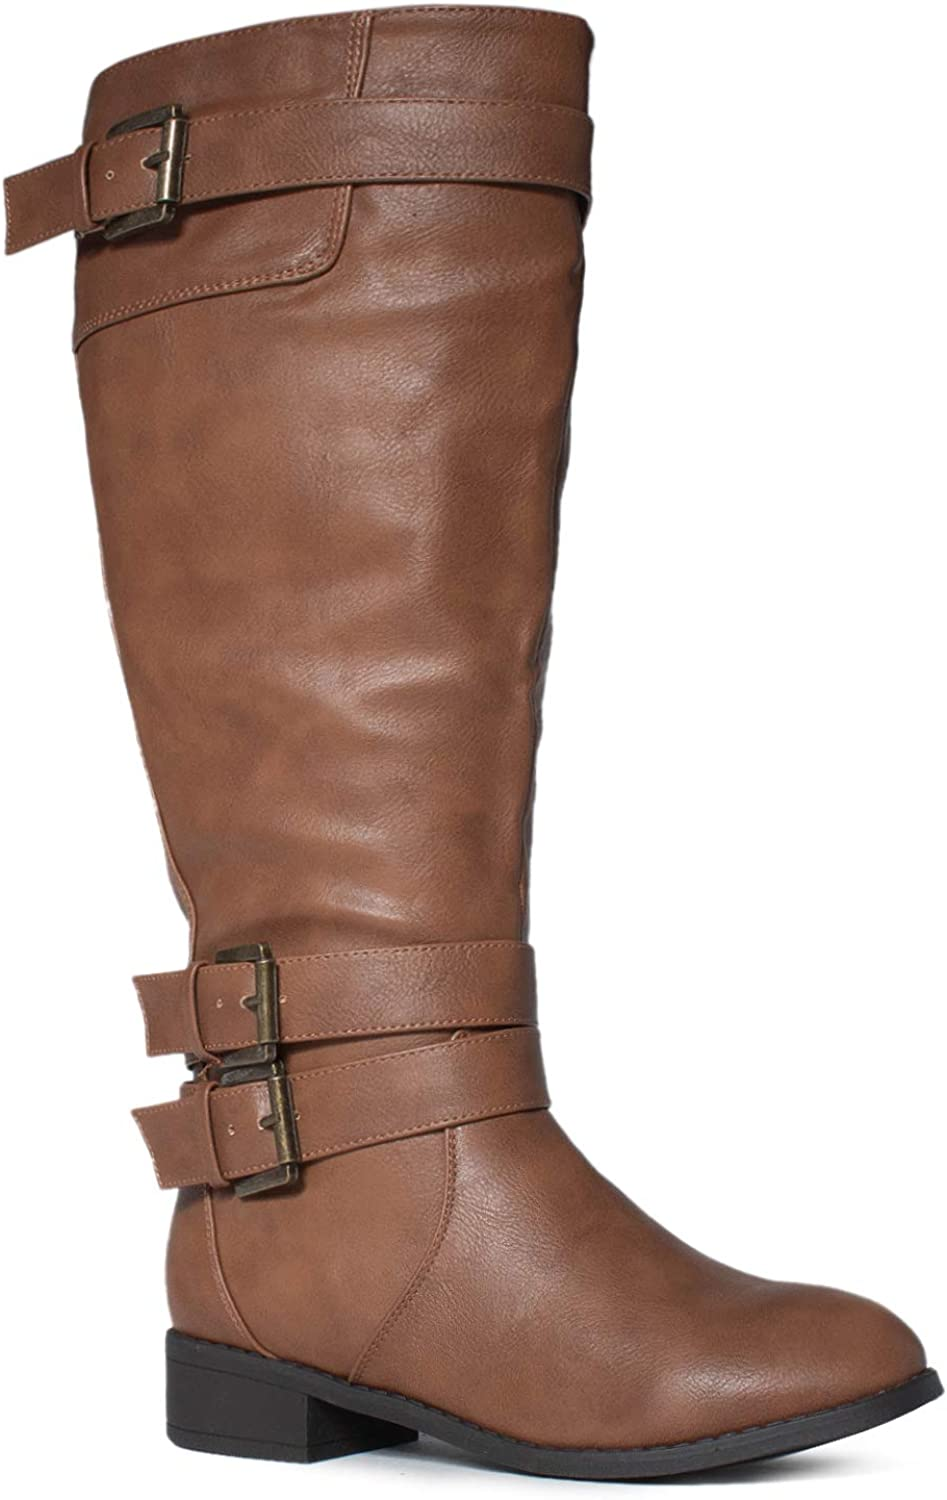 RF ROOM OF FASHION Madison Extra Wide Calf Buckle Knee High Riding Boots w Pocket